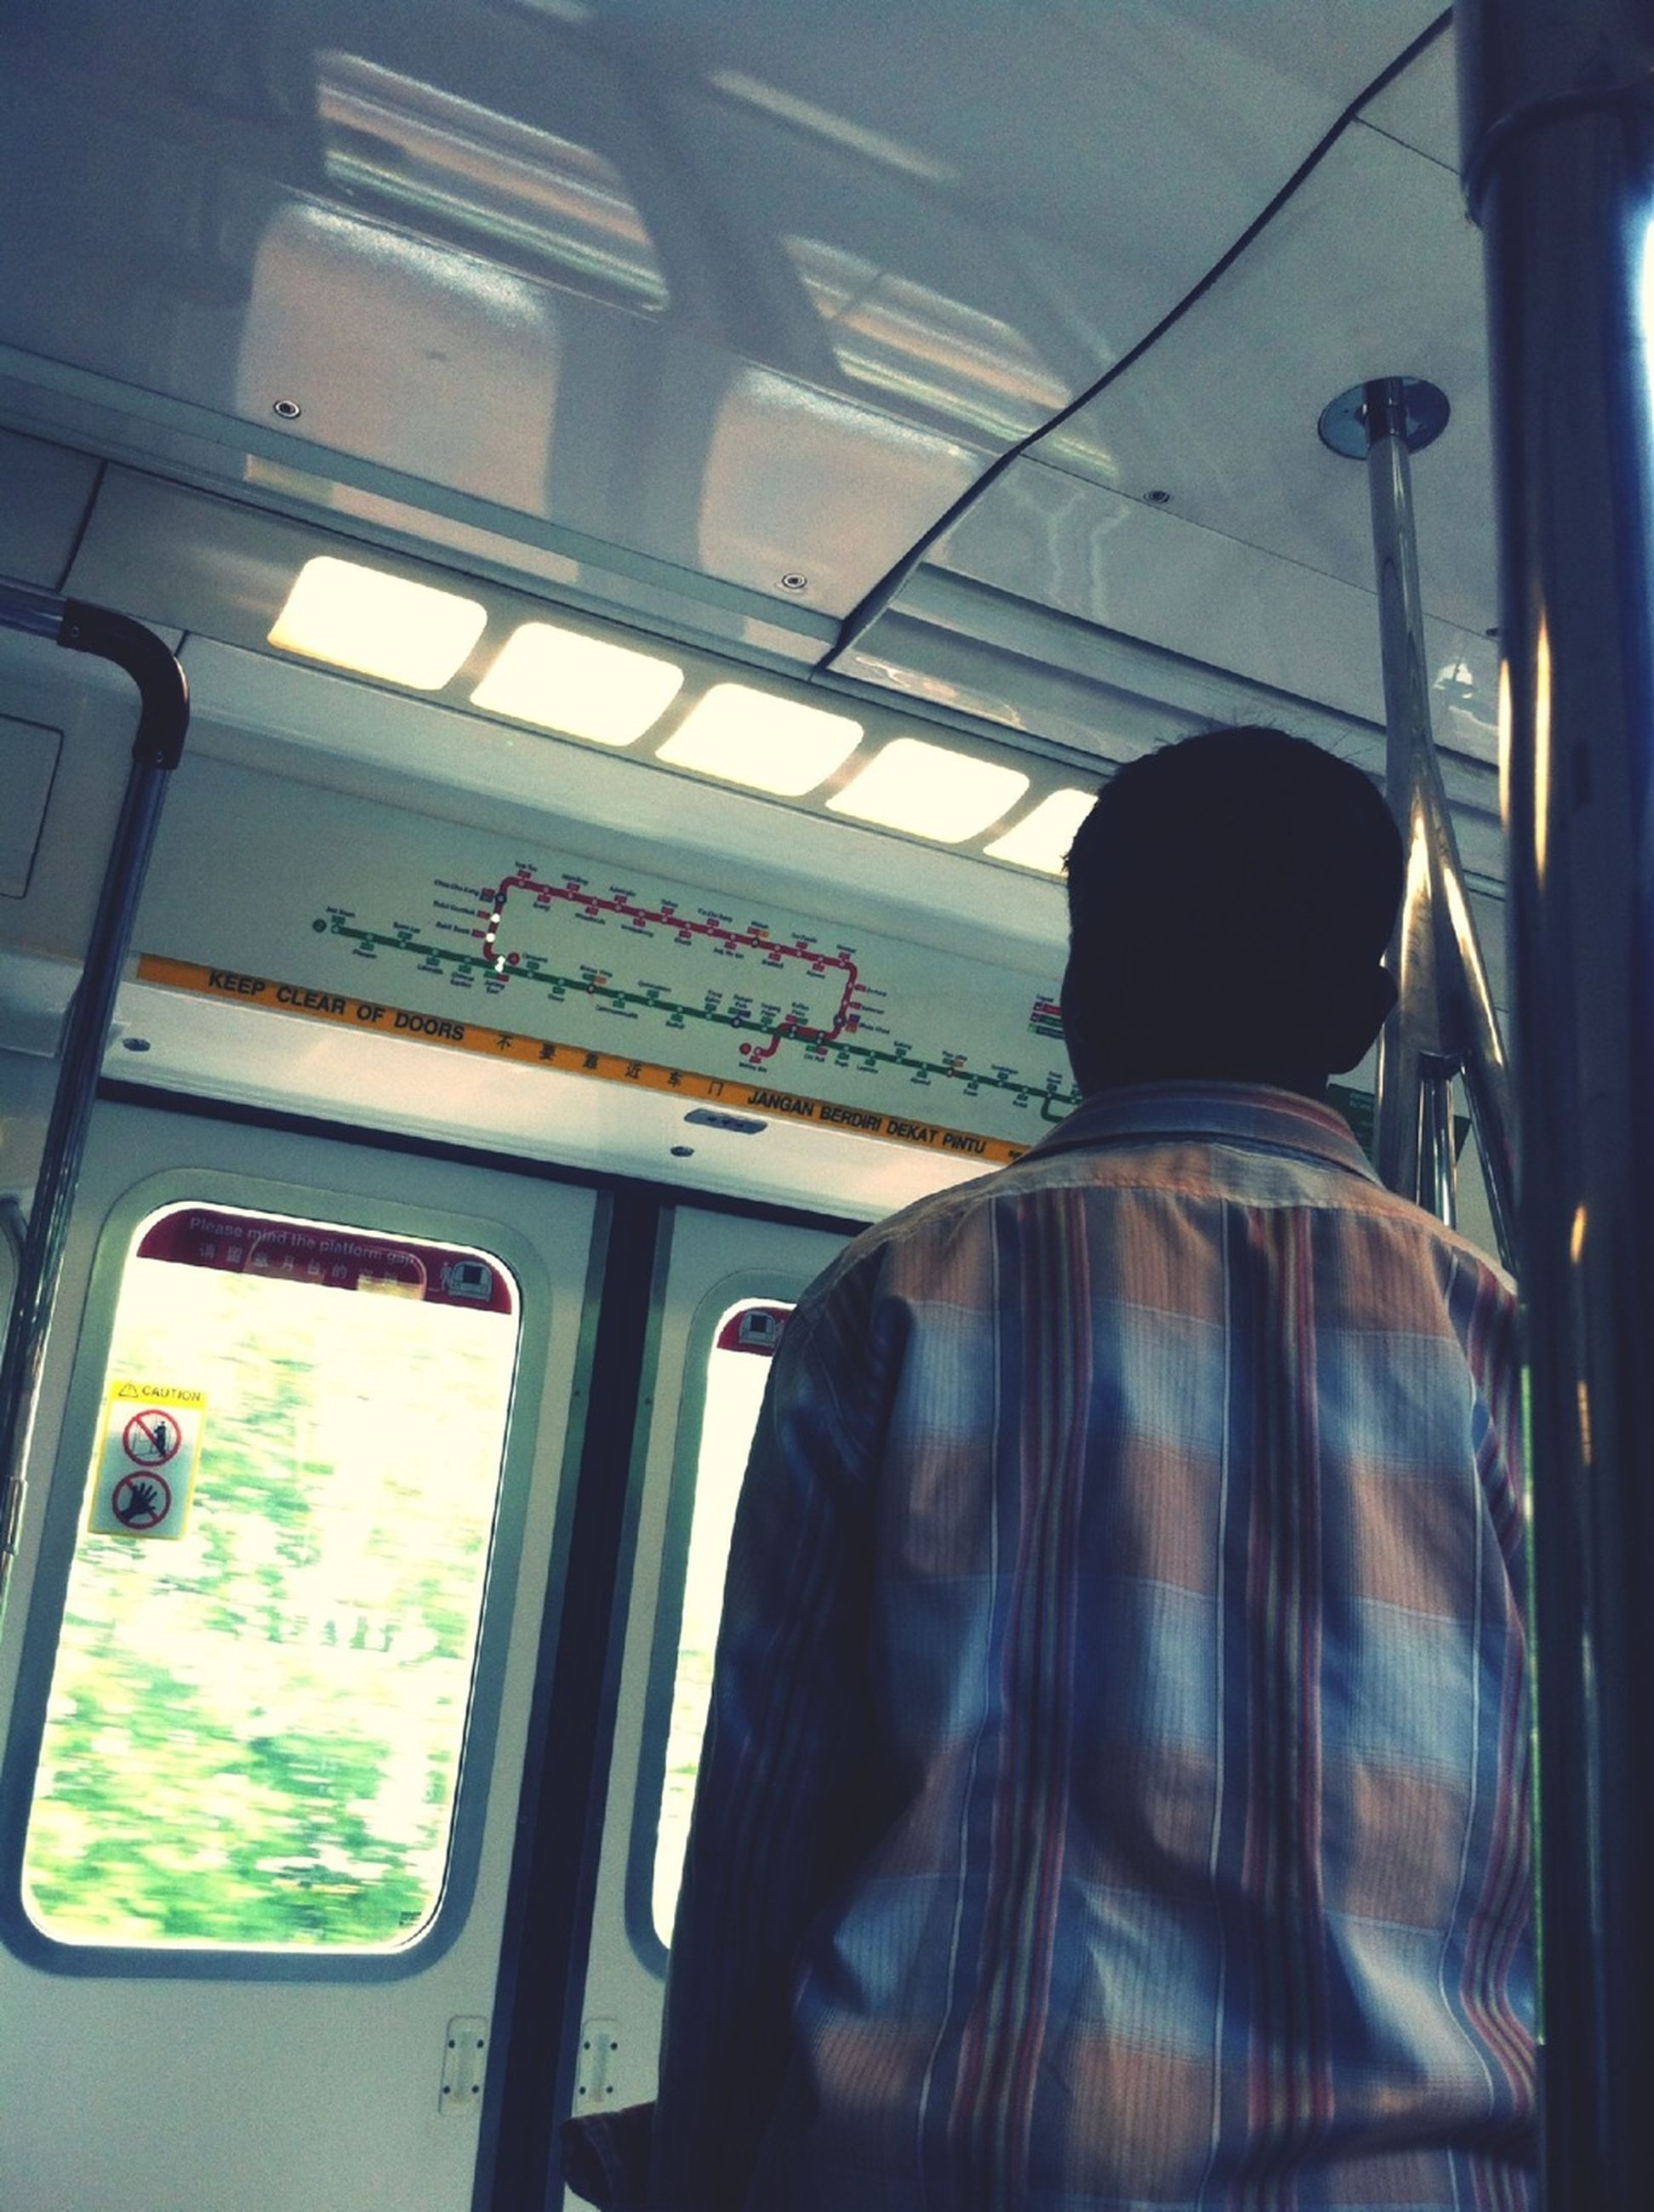 transportation, mode of transport, vehicle interior, window, public transportation, travel, indoors, land vehicle, car, glass - material, journey, train - vehicle, architecture, rear view, built structure, transparent, bus, on the move